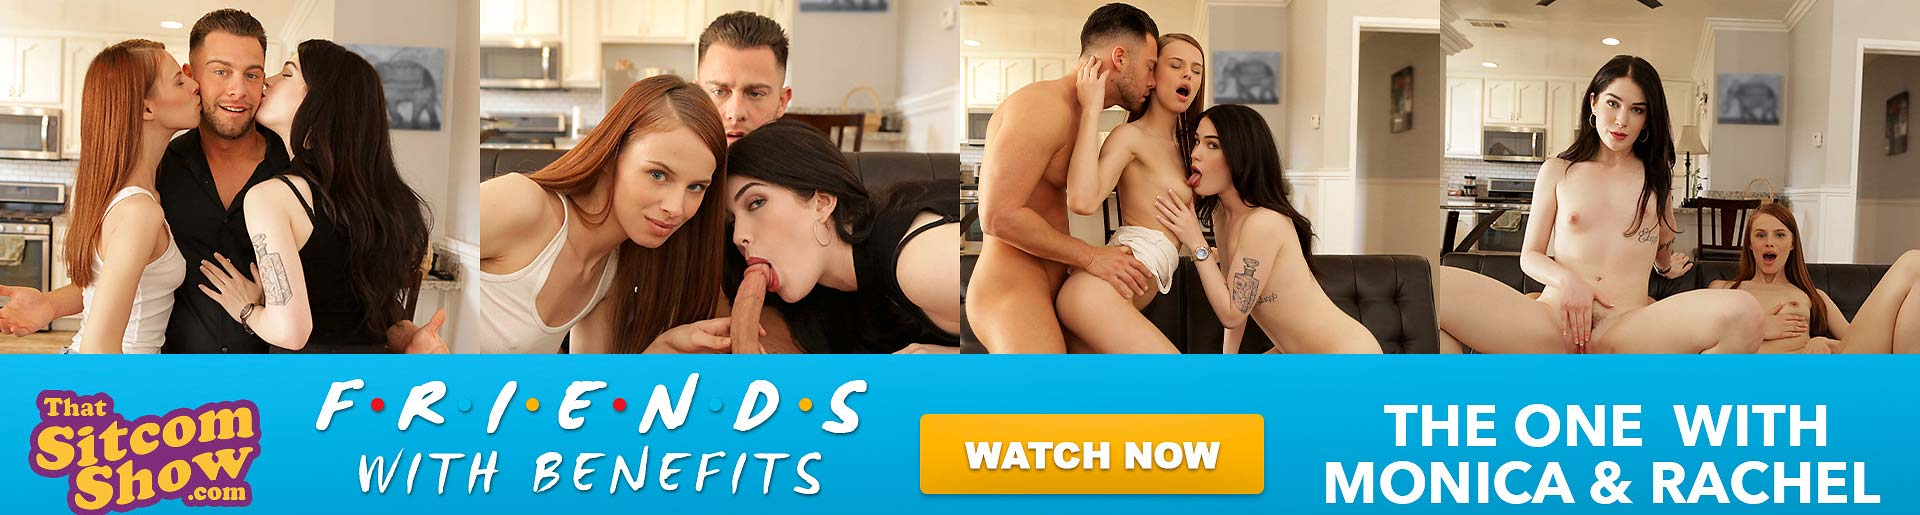 ThatSitcomShow Ffriends with benefits